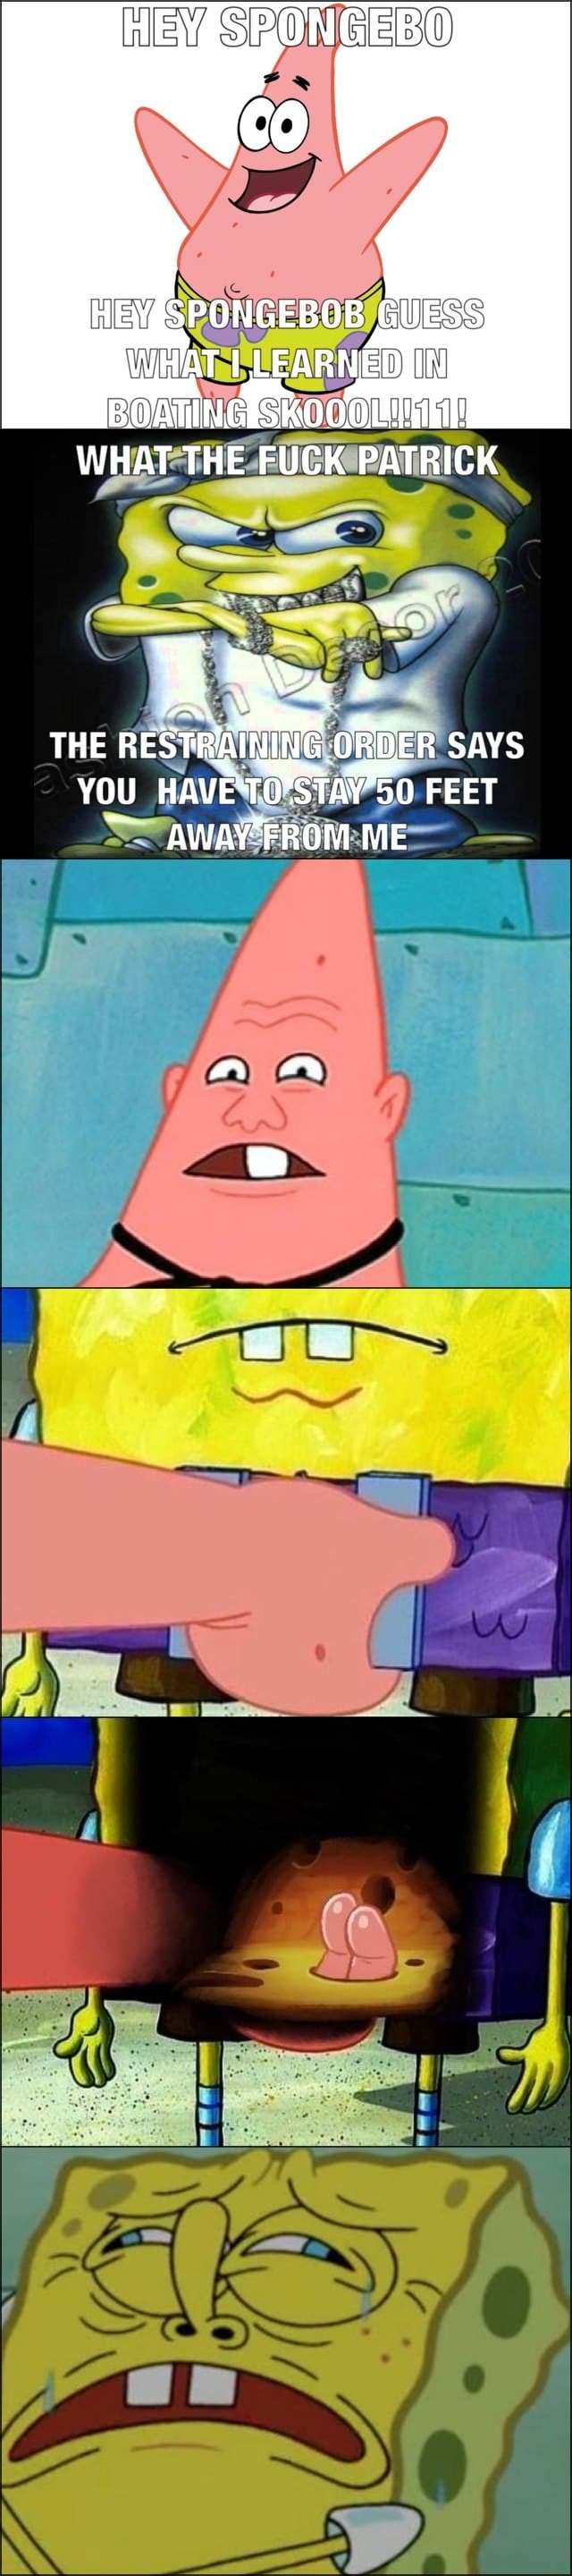 HEVAS PONGEBOB GUESS WHAT I LEARNEDIIN BO MTIN KOOT WHAT THE FUCK PATRICK THE RESTRAINING ORDER SAYS YOU HAVETO'STAY'50 FEET AWAY*FROM ME memes